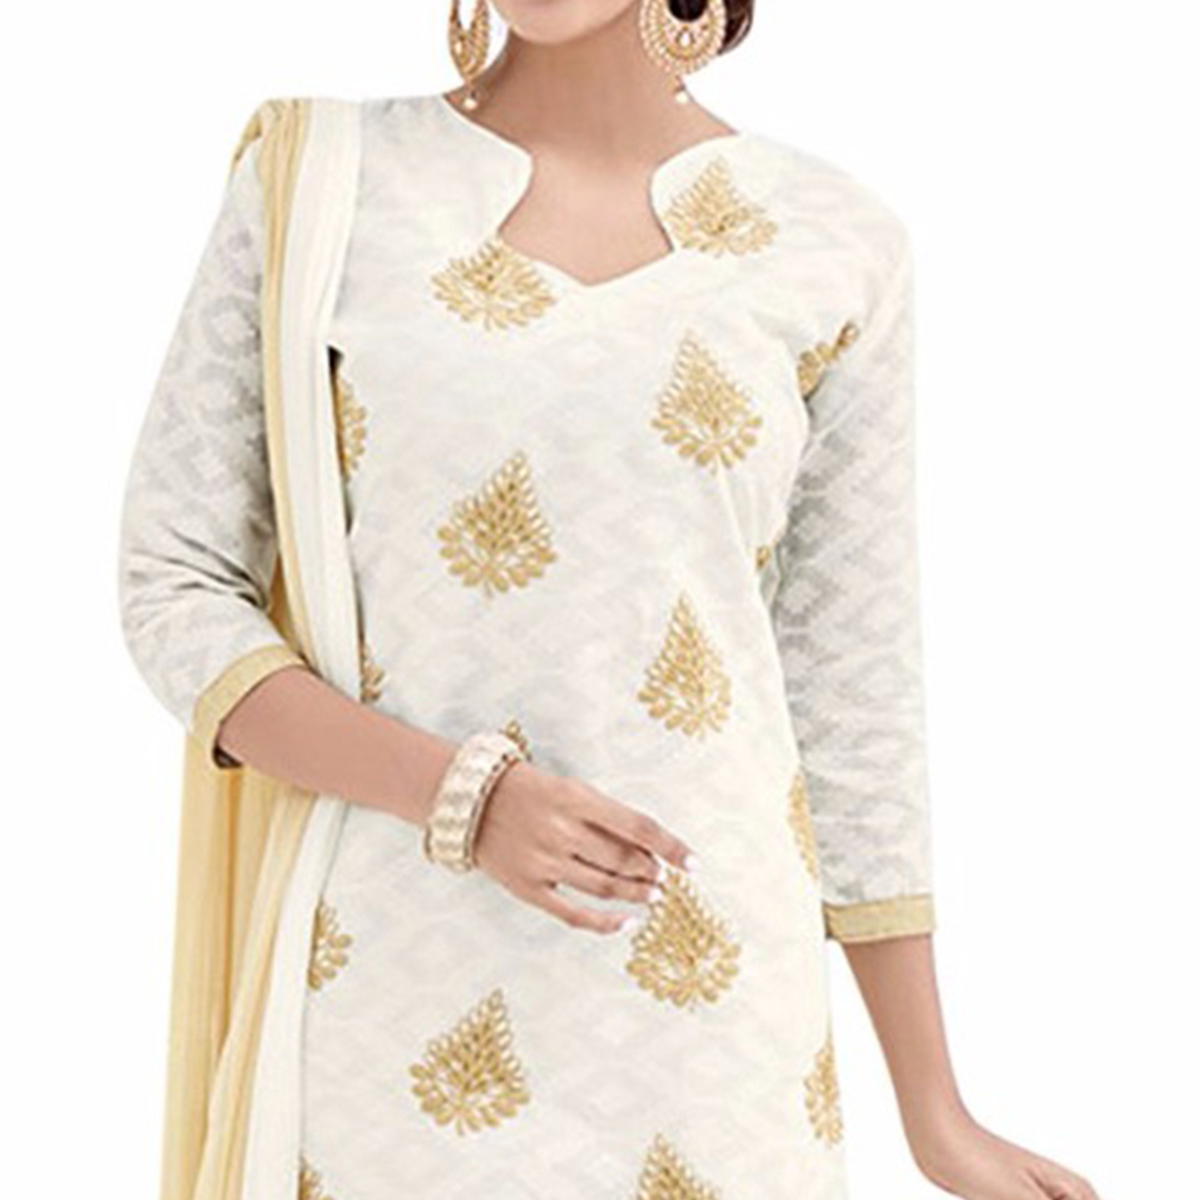 Stylish Off White And Beige Lakda Jacquard Embroidered Dress Material